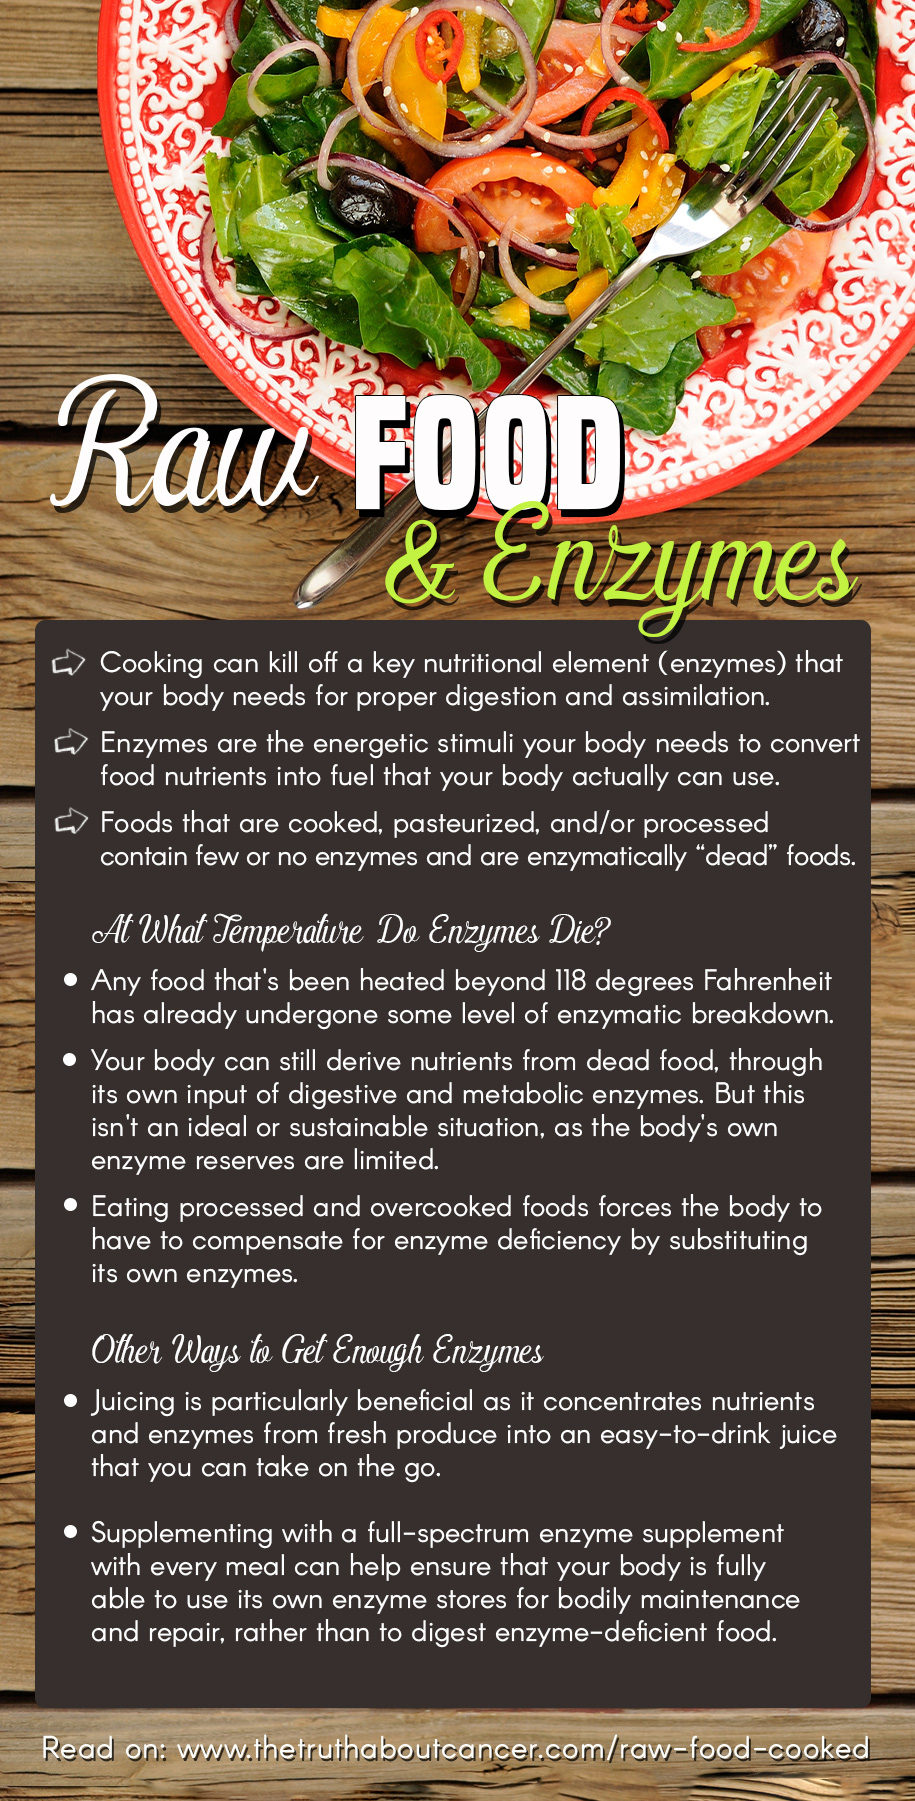 E supplements in food - If life is expensive read and remember